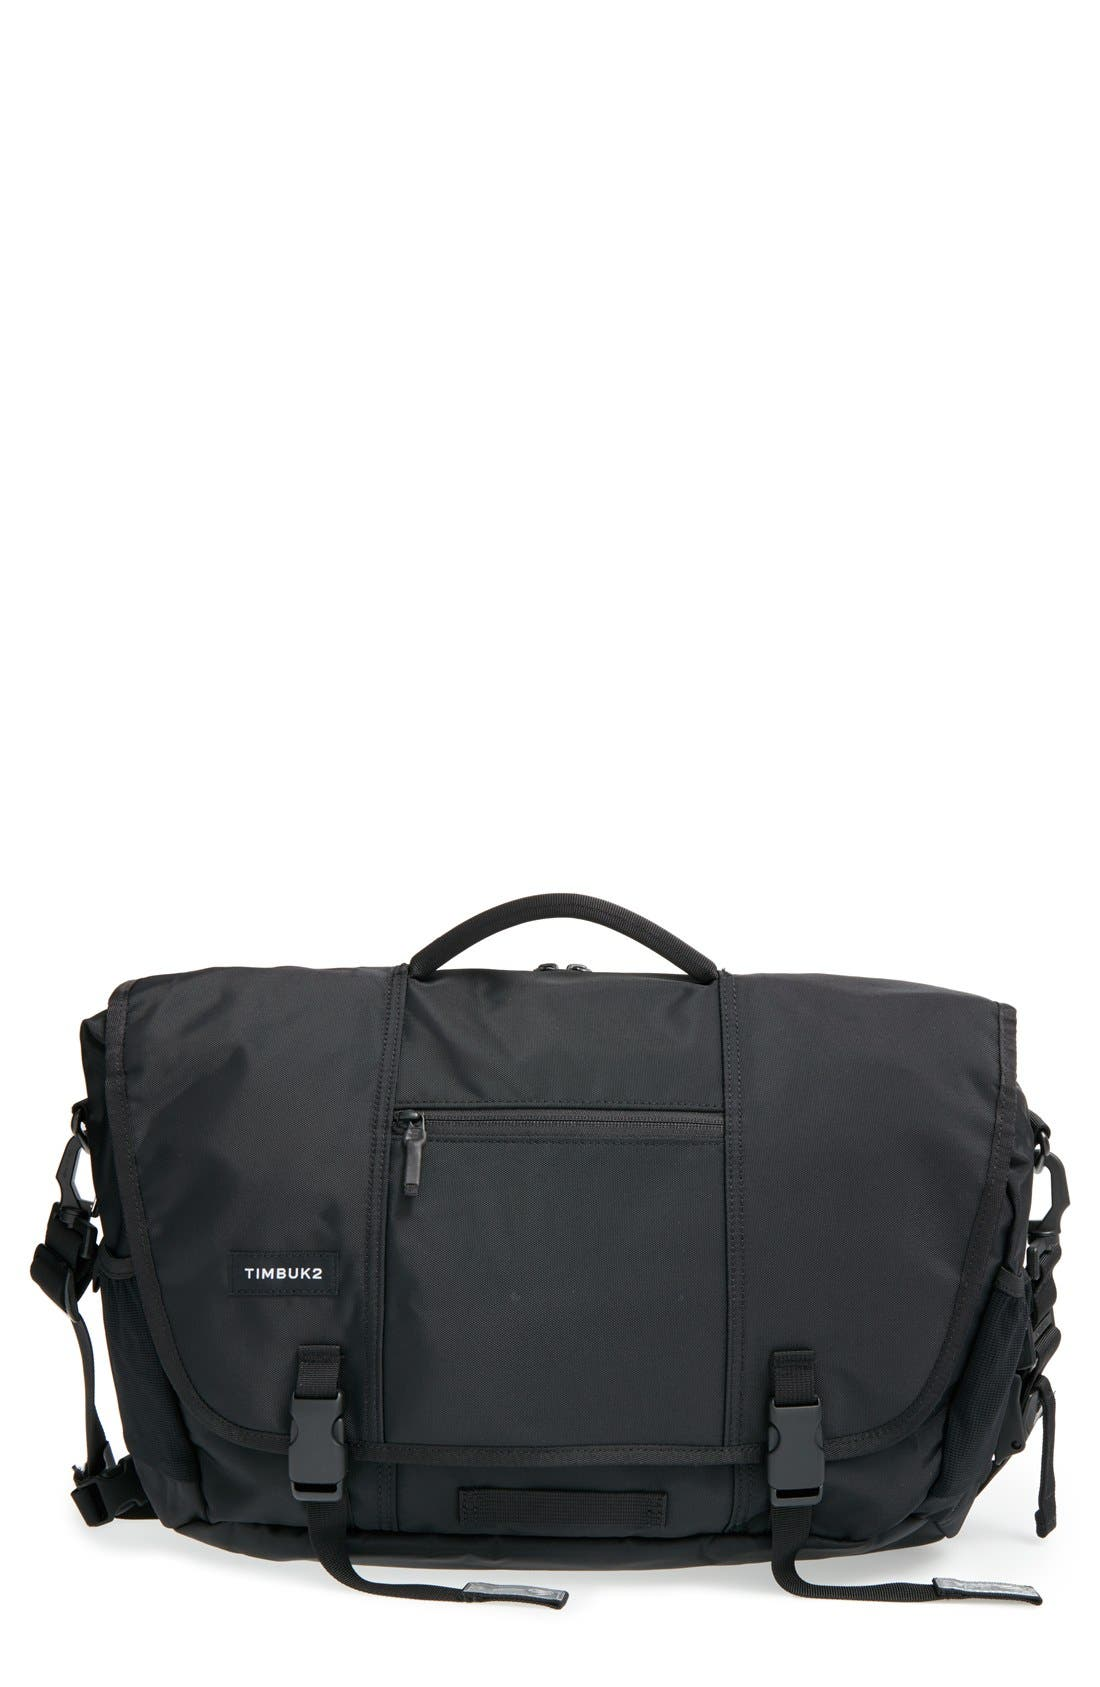 Timbuk2 'Commute